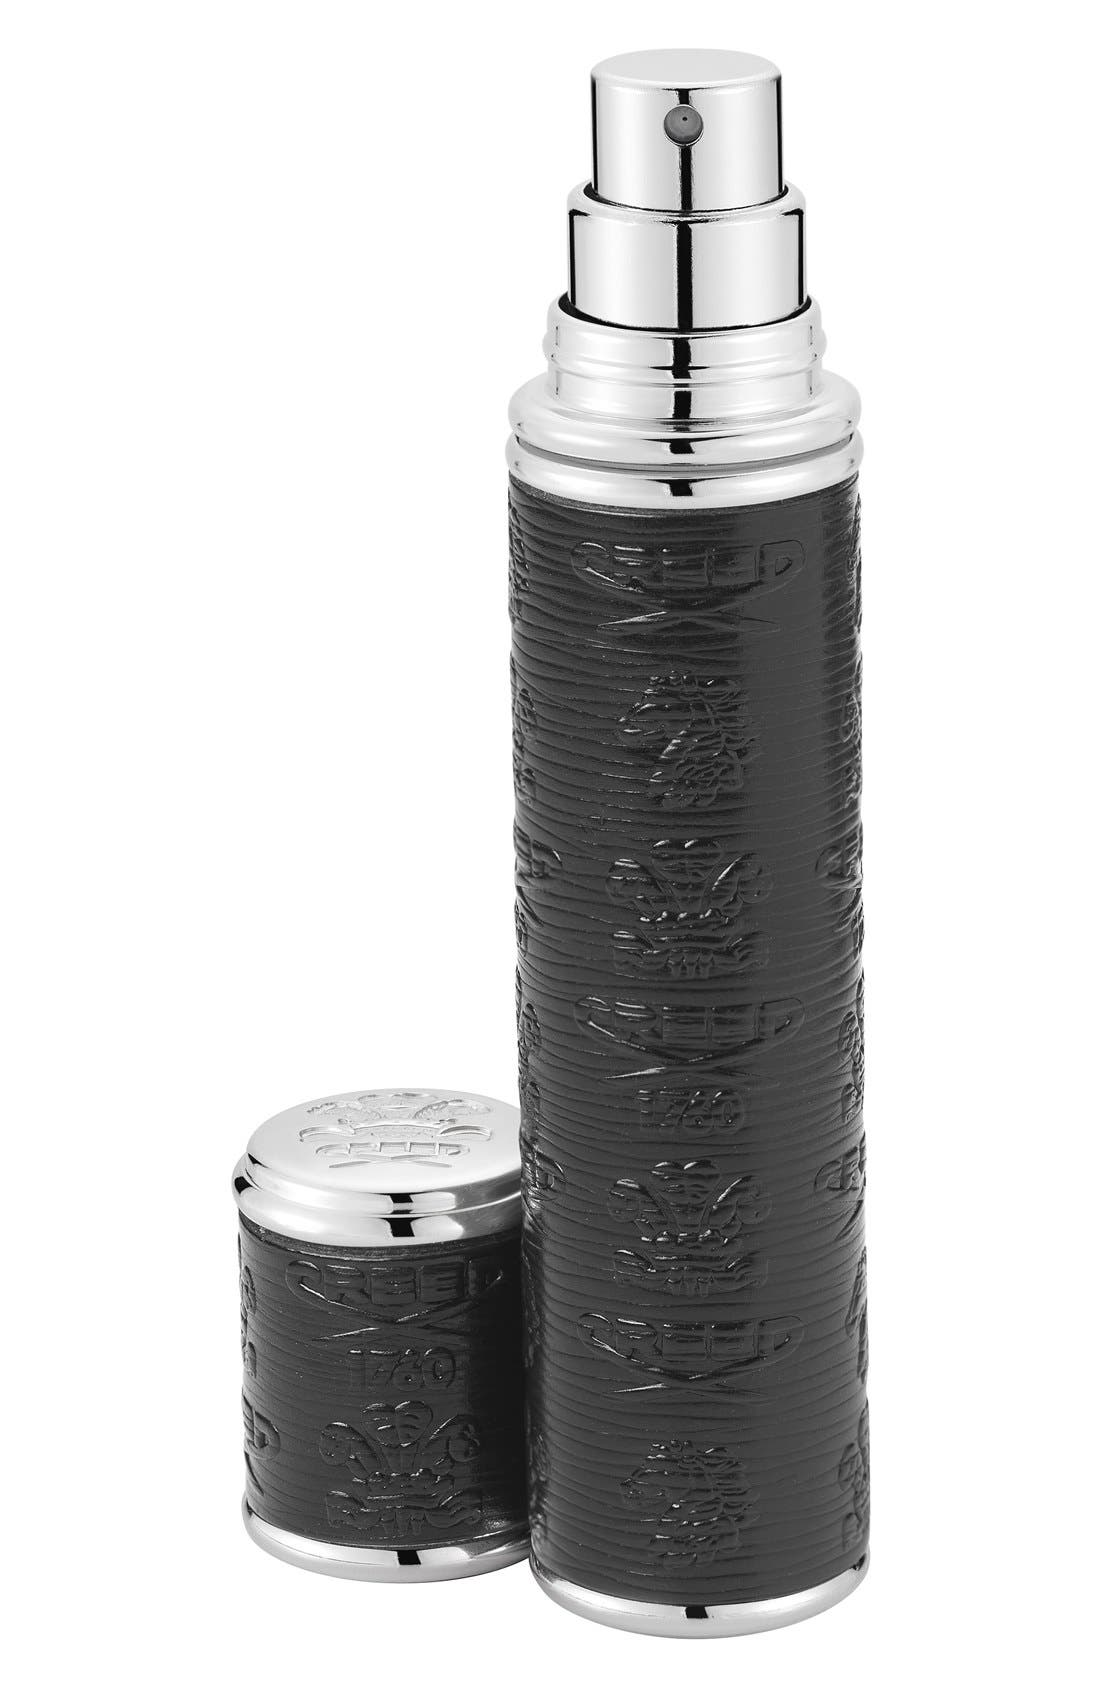 Black Leather with Silver Trim Pocket Atomizer,                             Main thumbnail 1, color,                             000